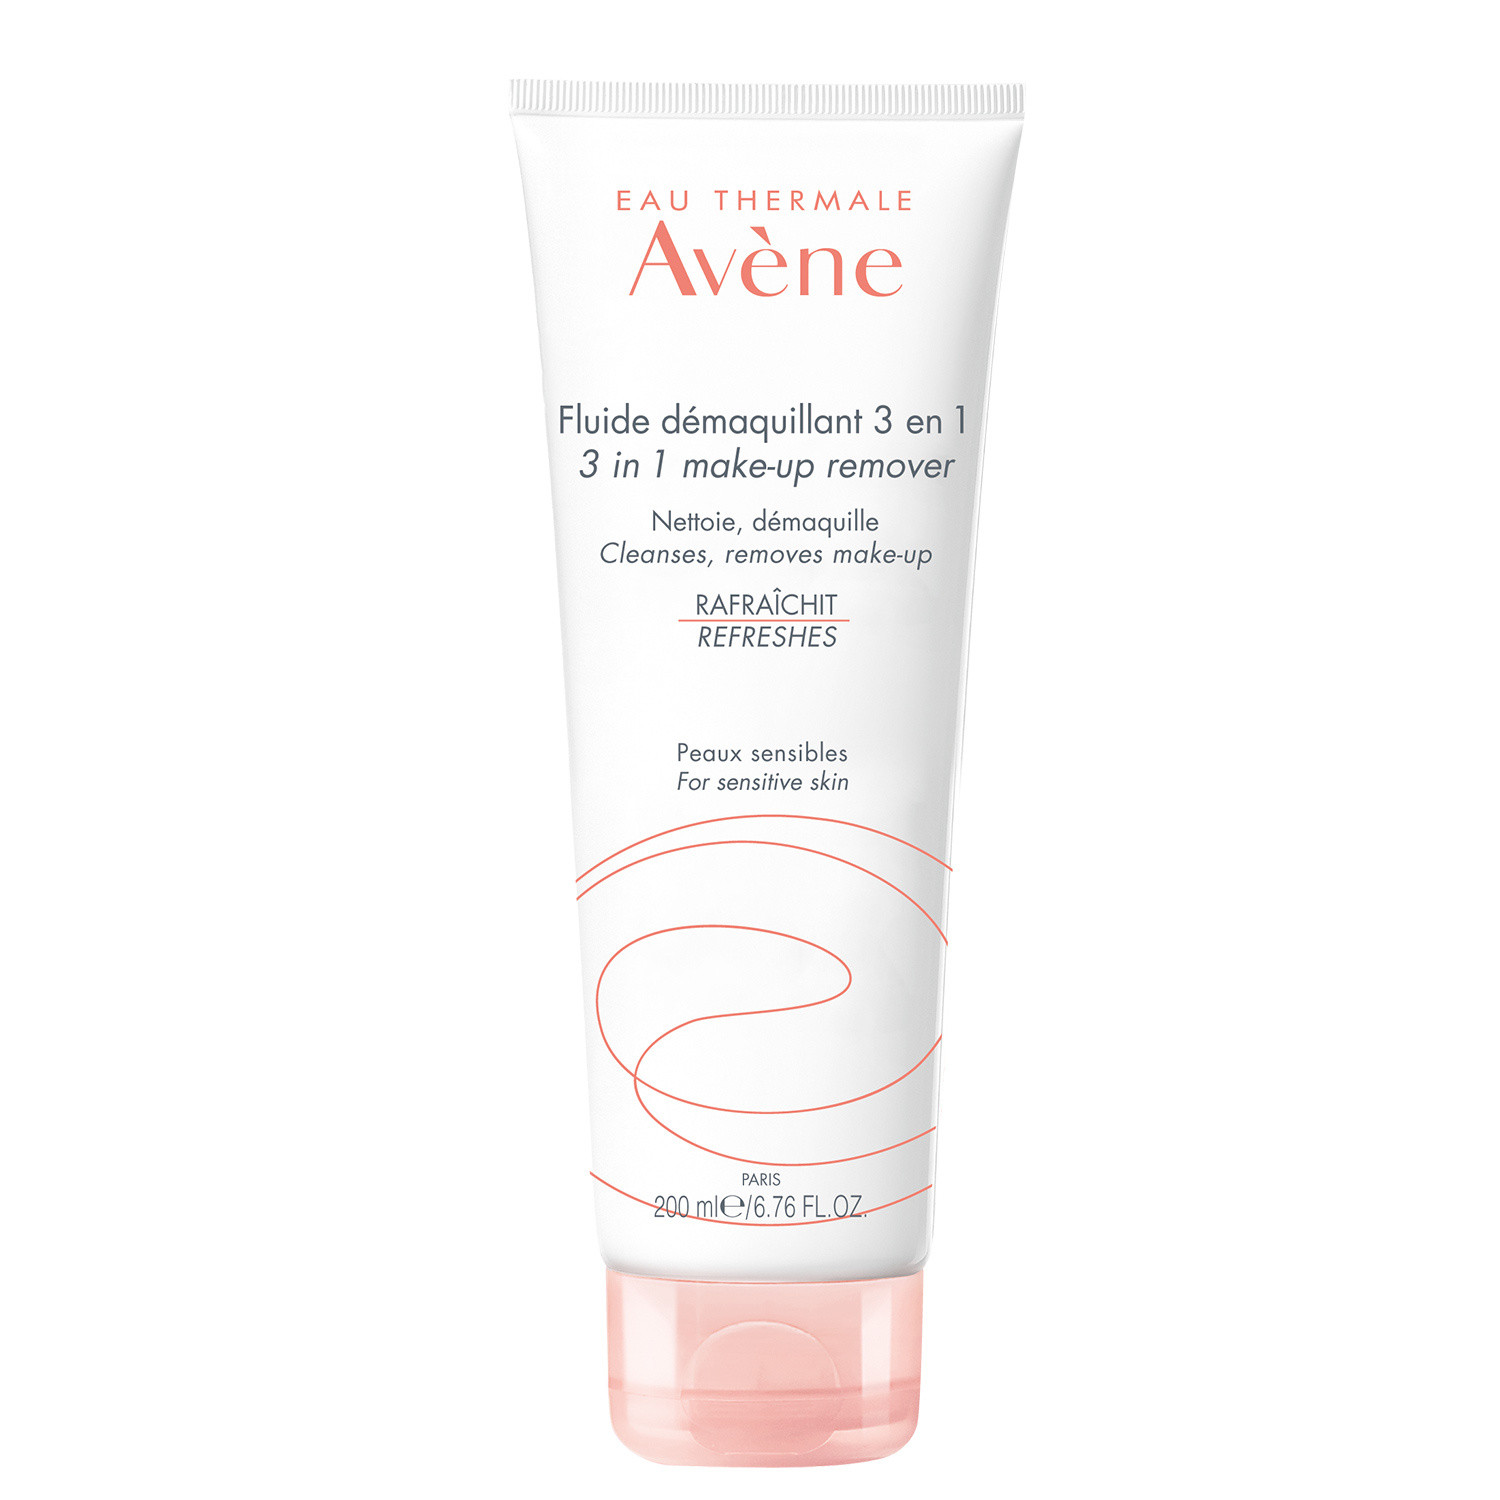 Avene 3 in 1 Cleanser & Makeup Remover